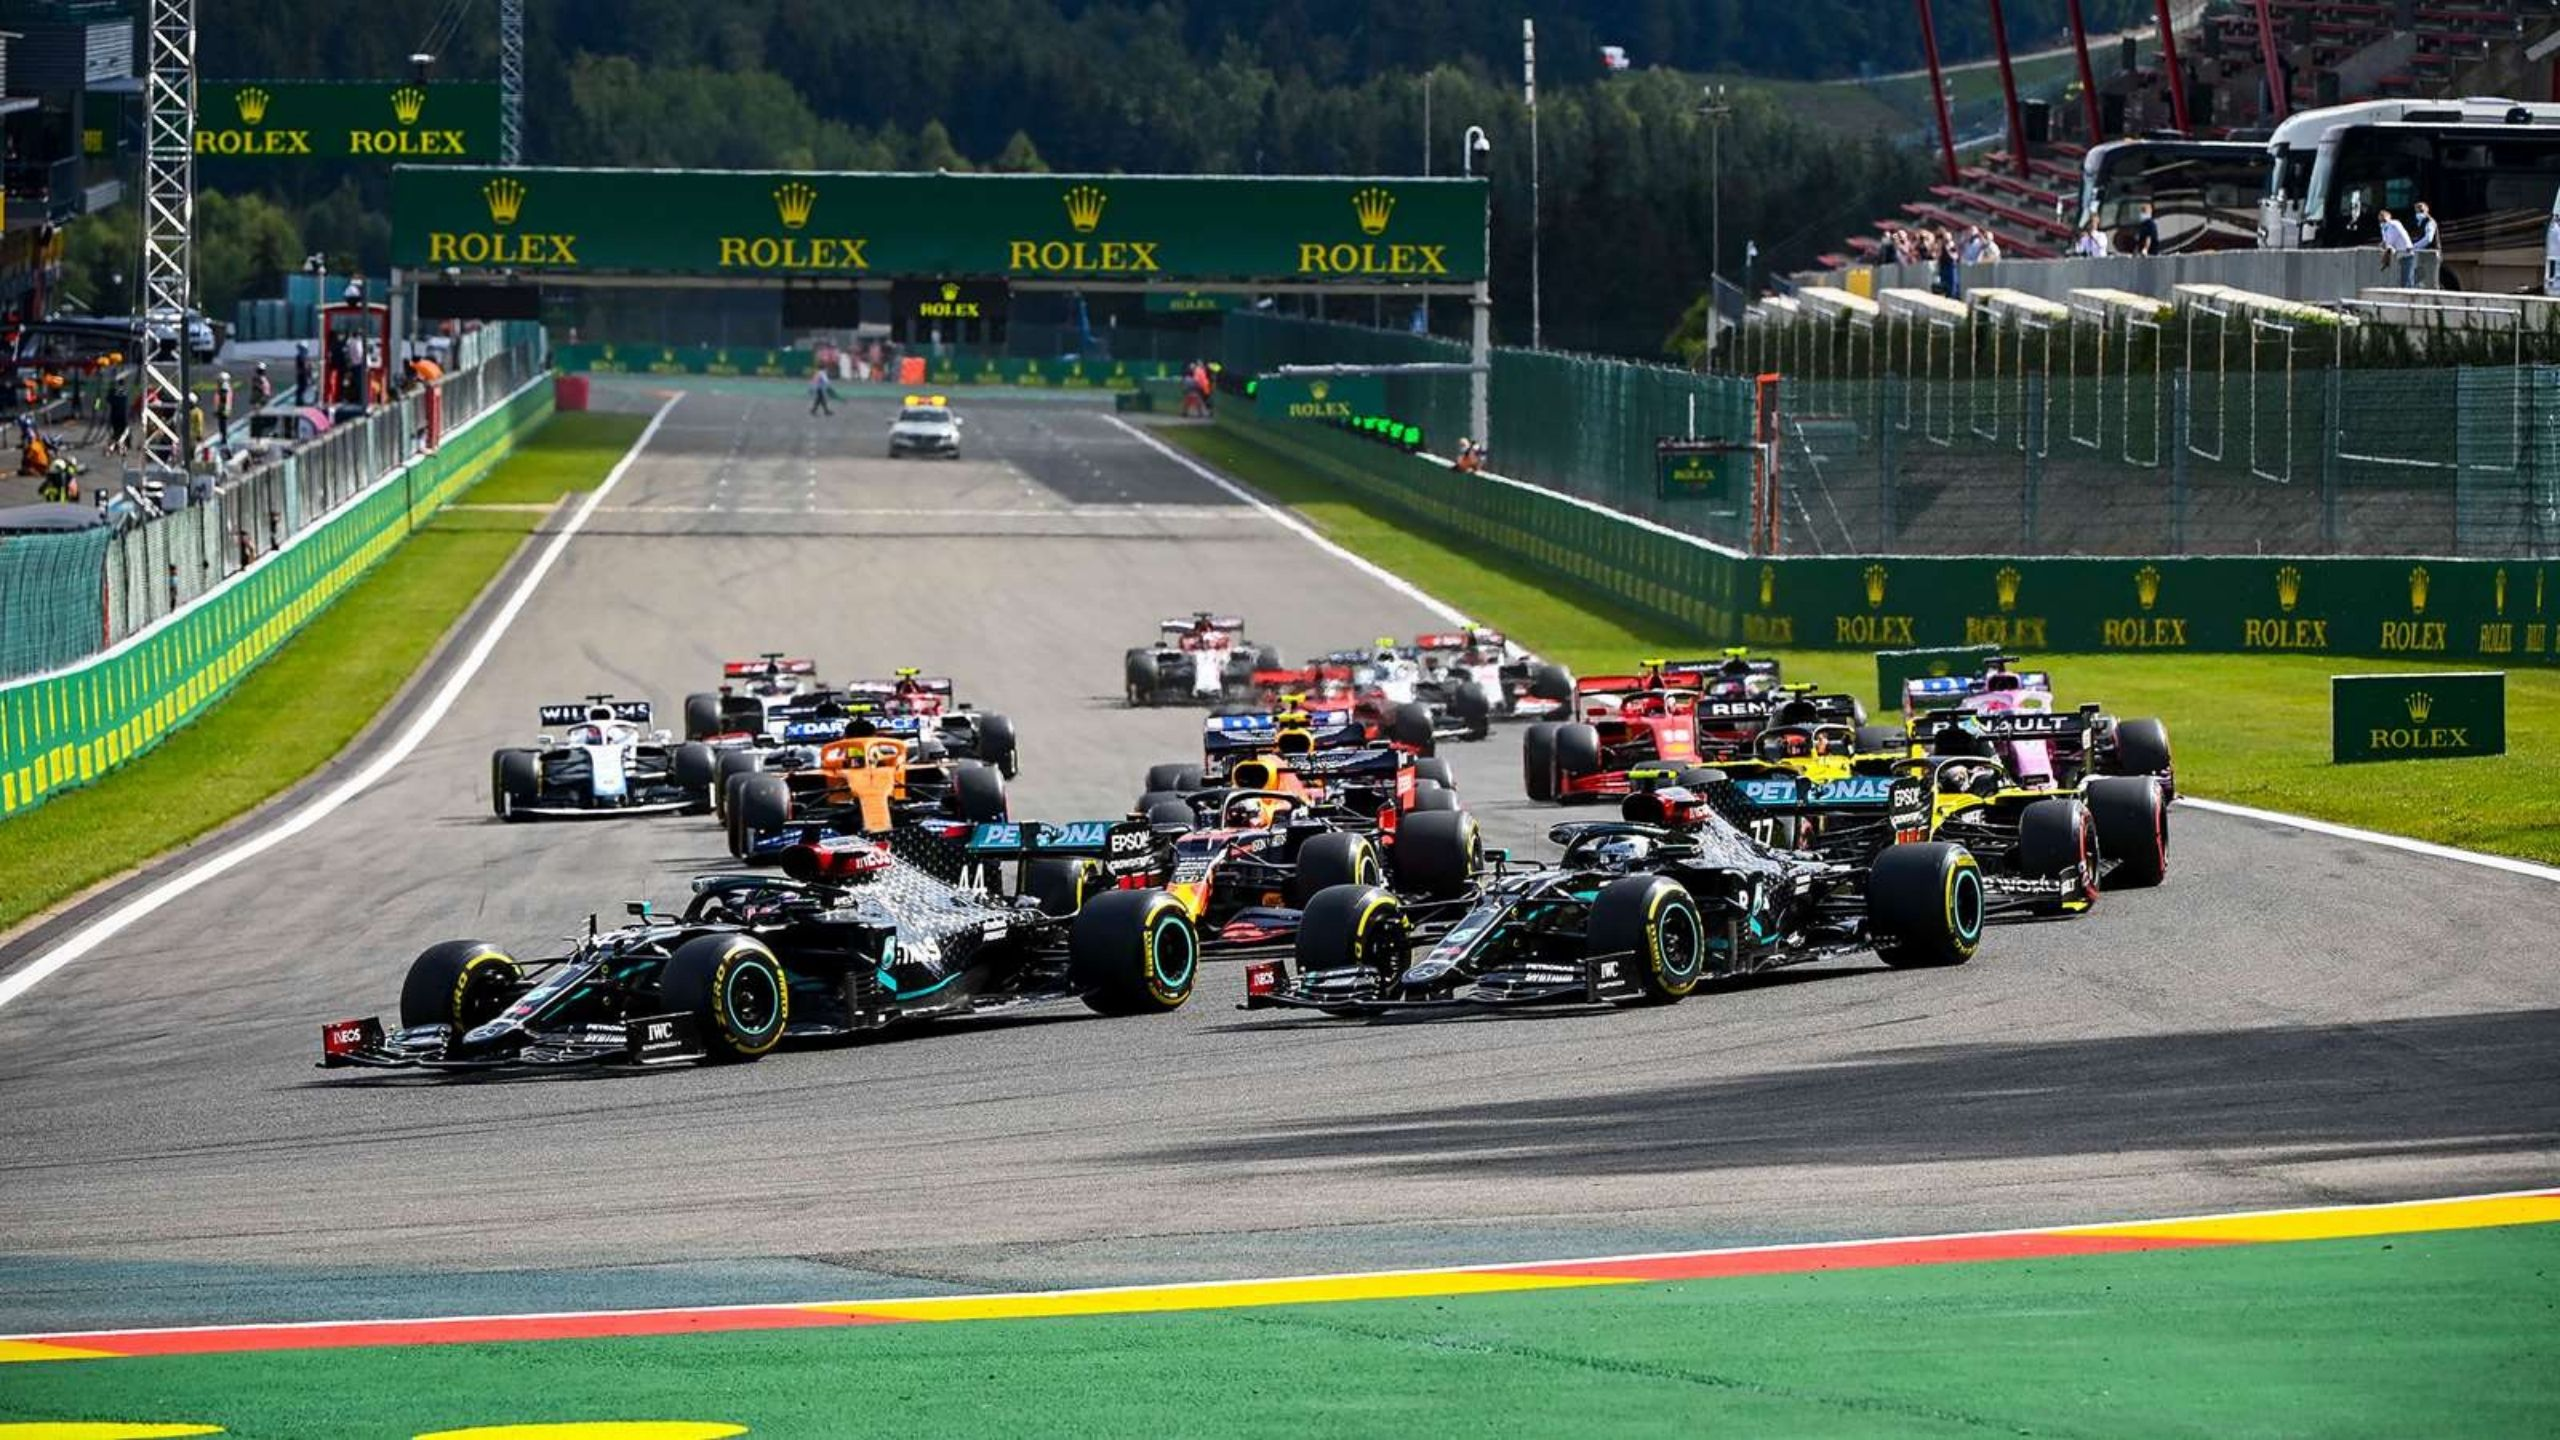 F1 2021 Calendar: Provisional race calendar presented to teams; Bahrain to be pre-season testing ground in place of Barcelona